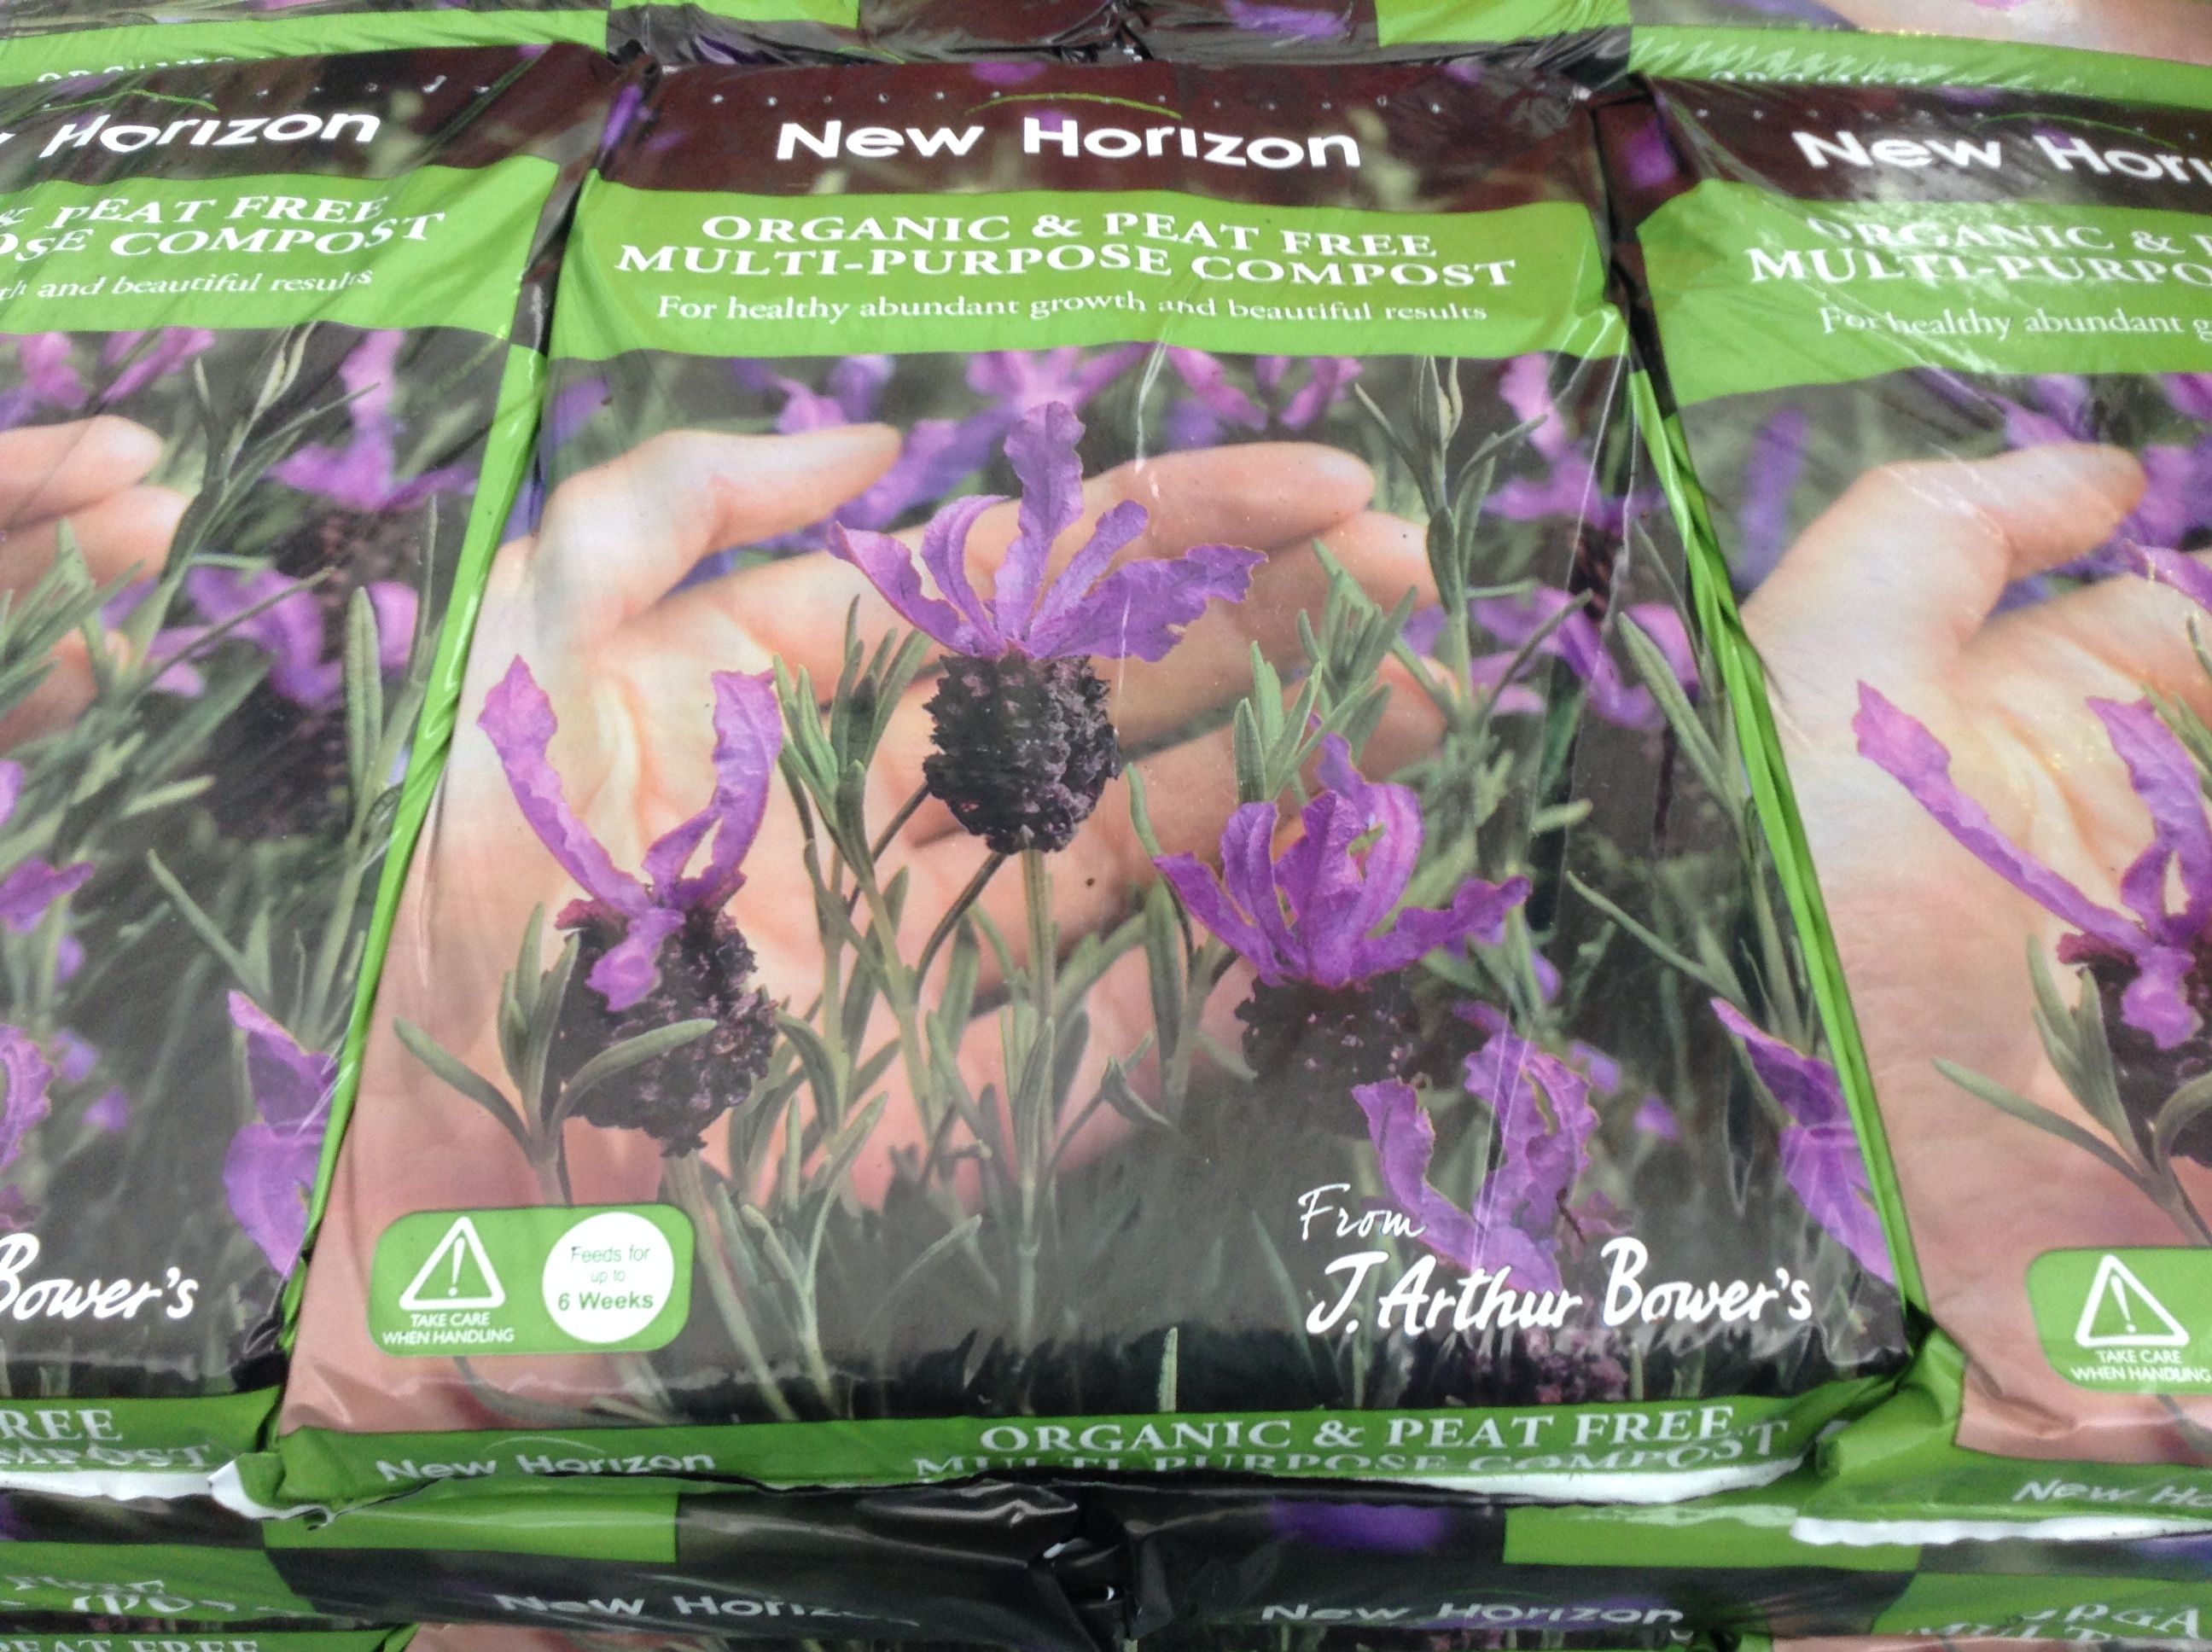 New Horizon organic peat-free compost